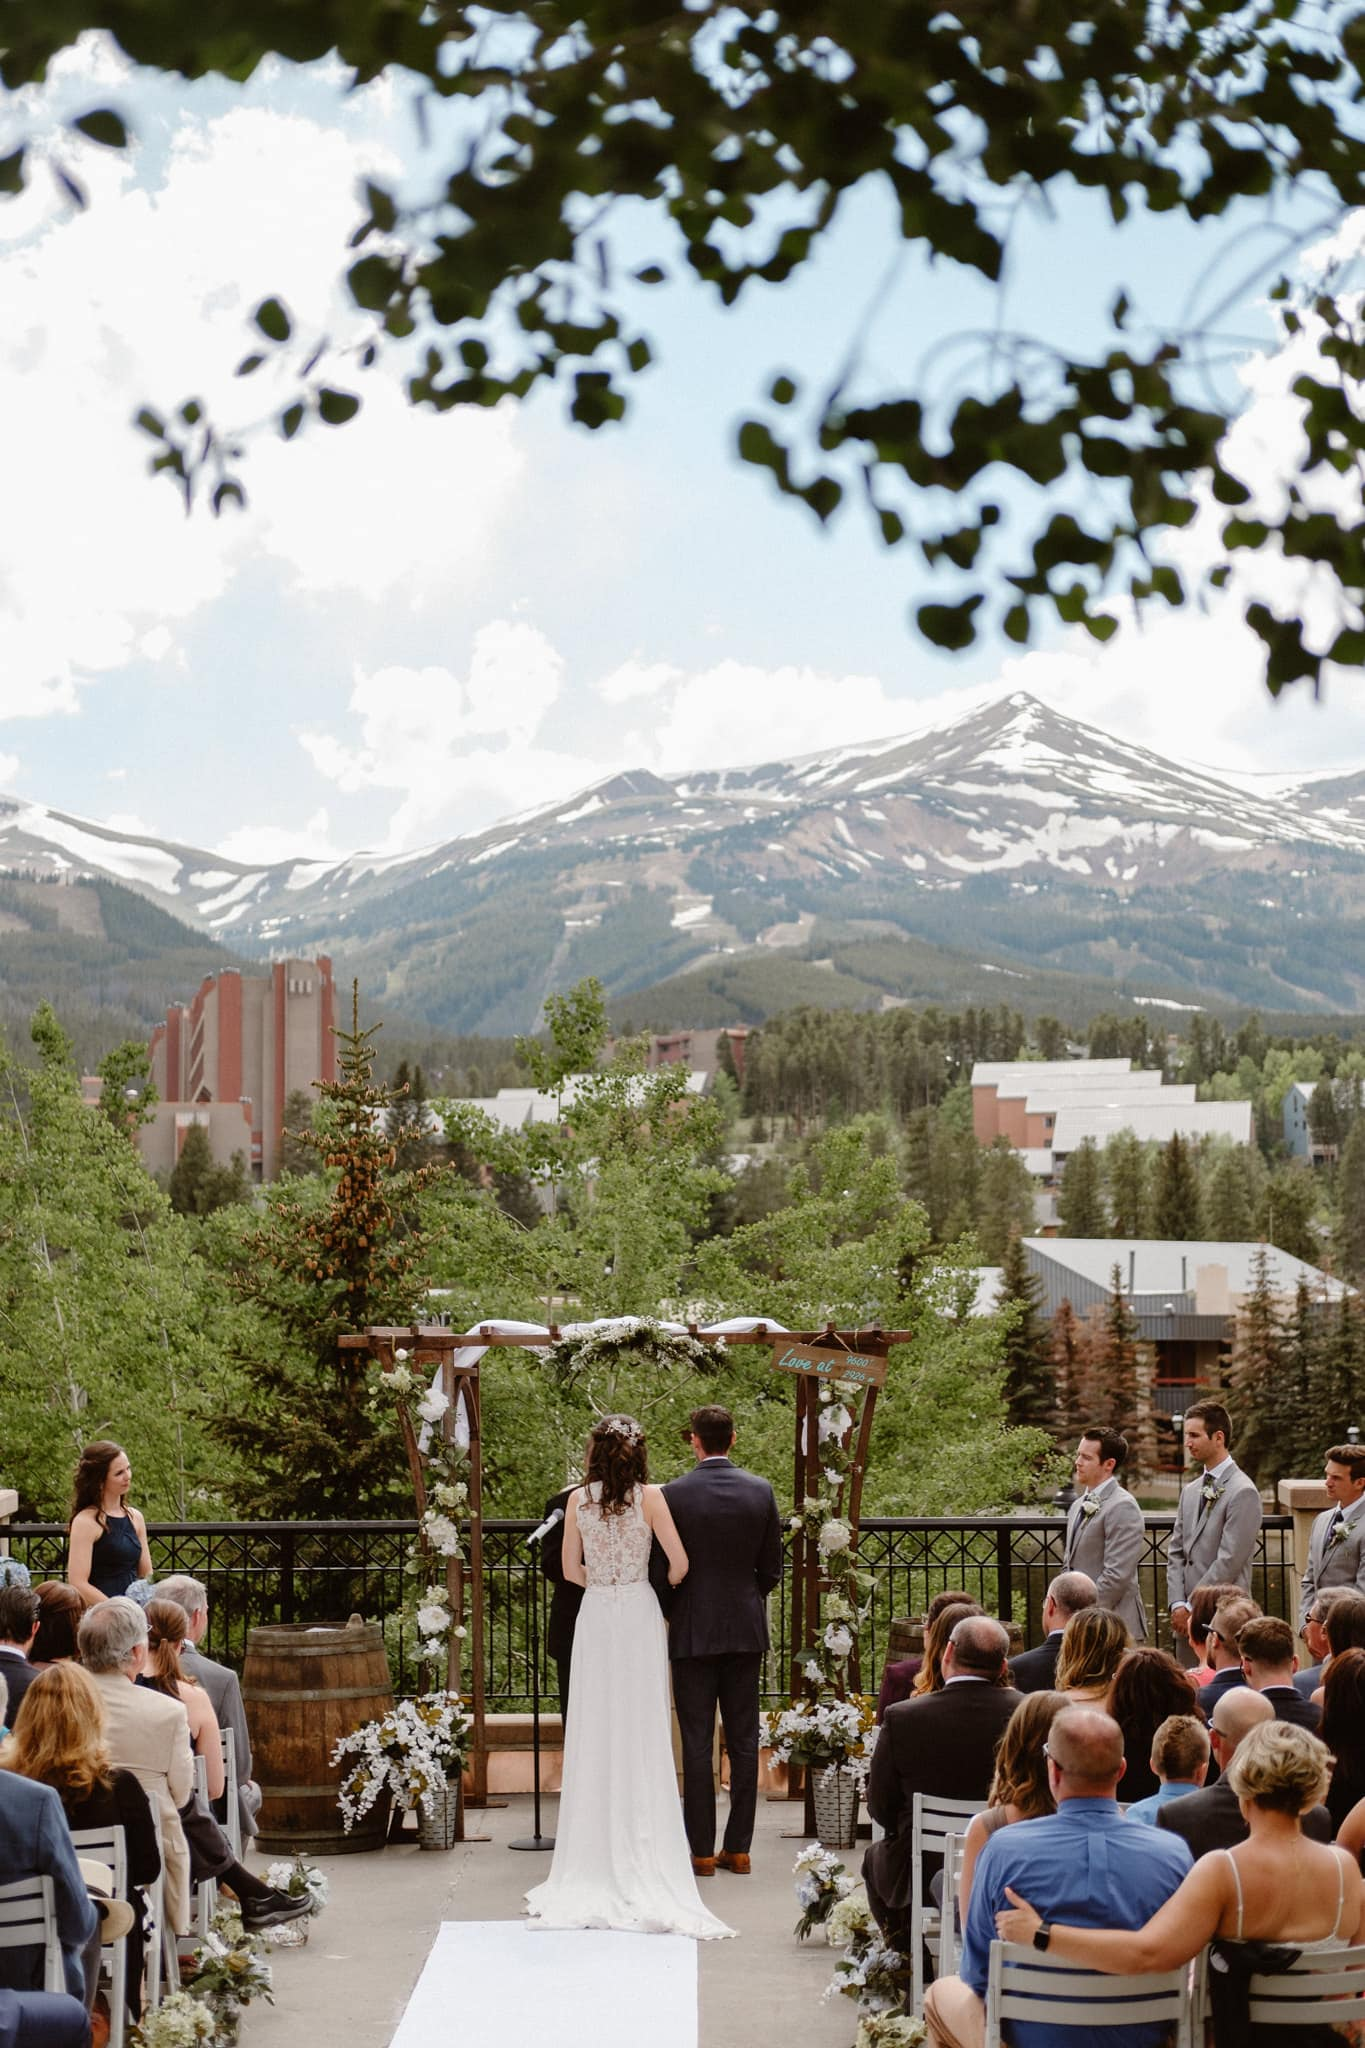 Main Street Station wedding photographer, Breckenridge Colorado ski resort wedding photographer